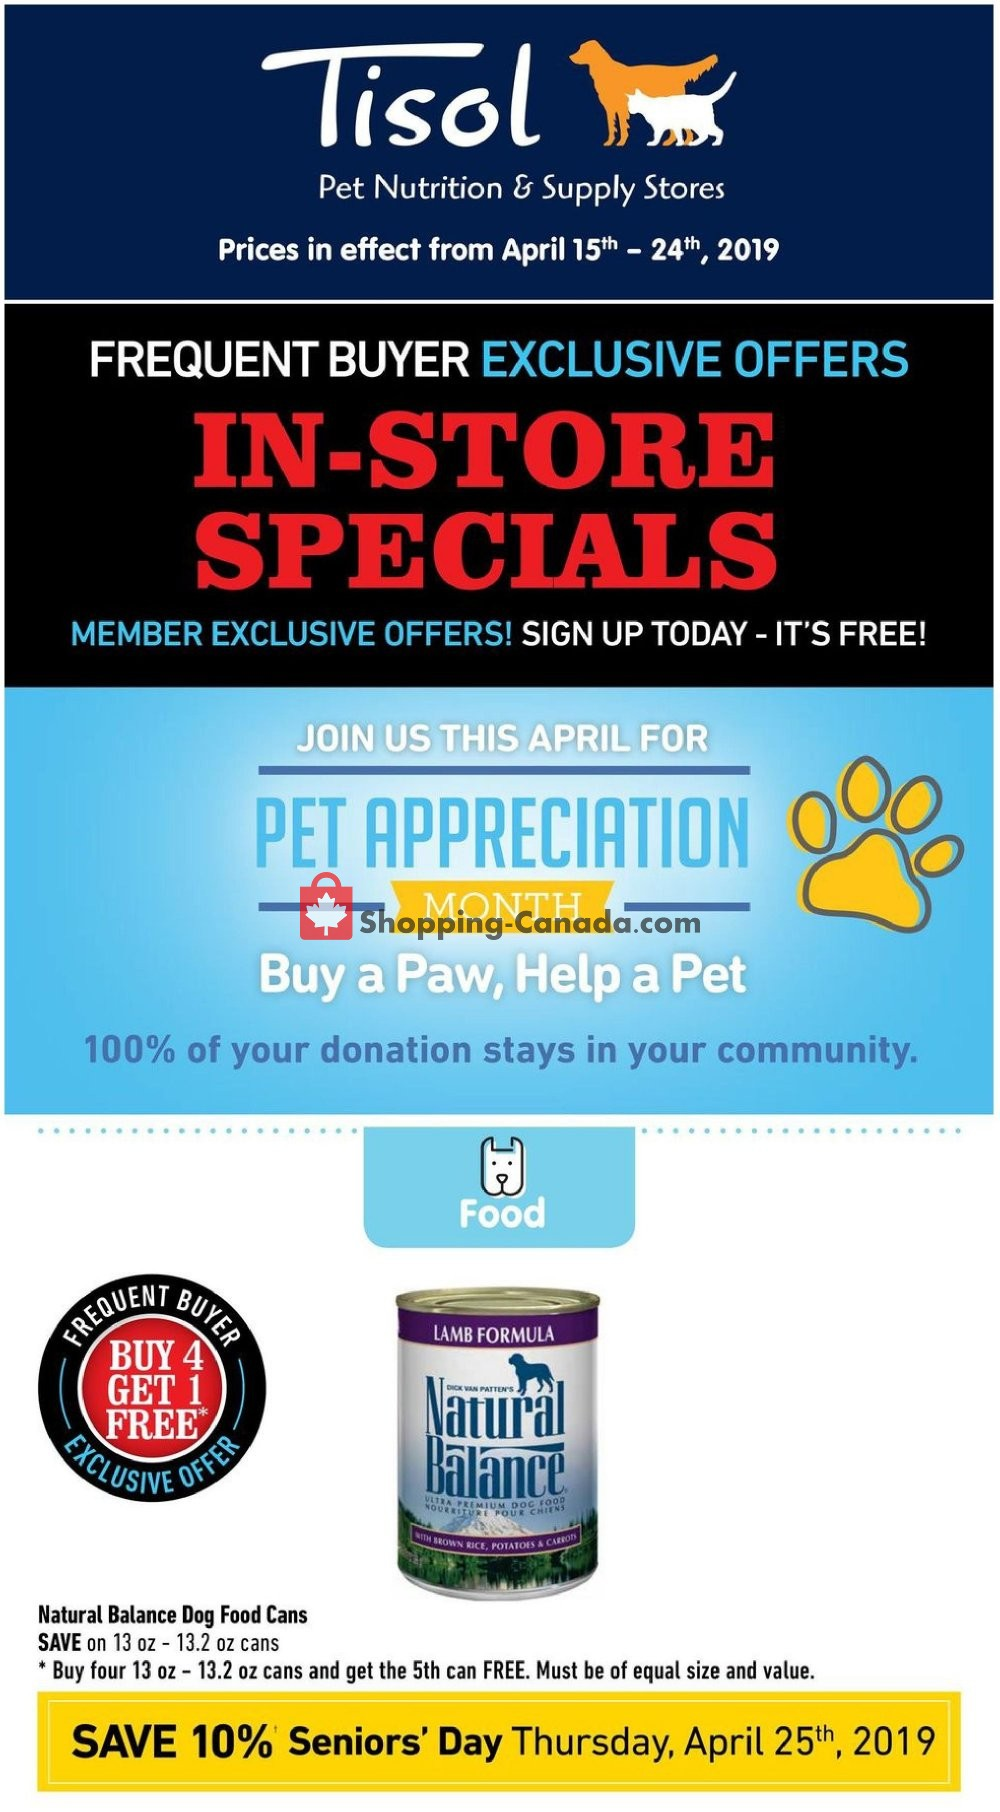 Flyer Tisol Pet Nutrition And Supply Stores Canada - from Monday April 15, 2019 to Wednesday April 24, 2019